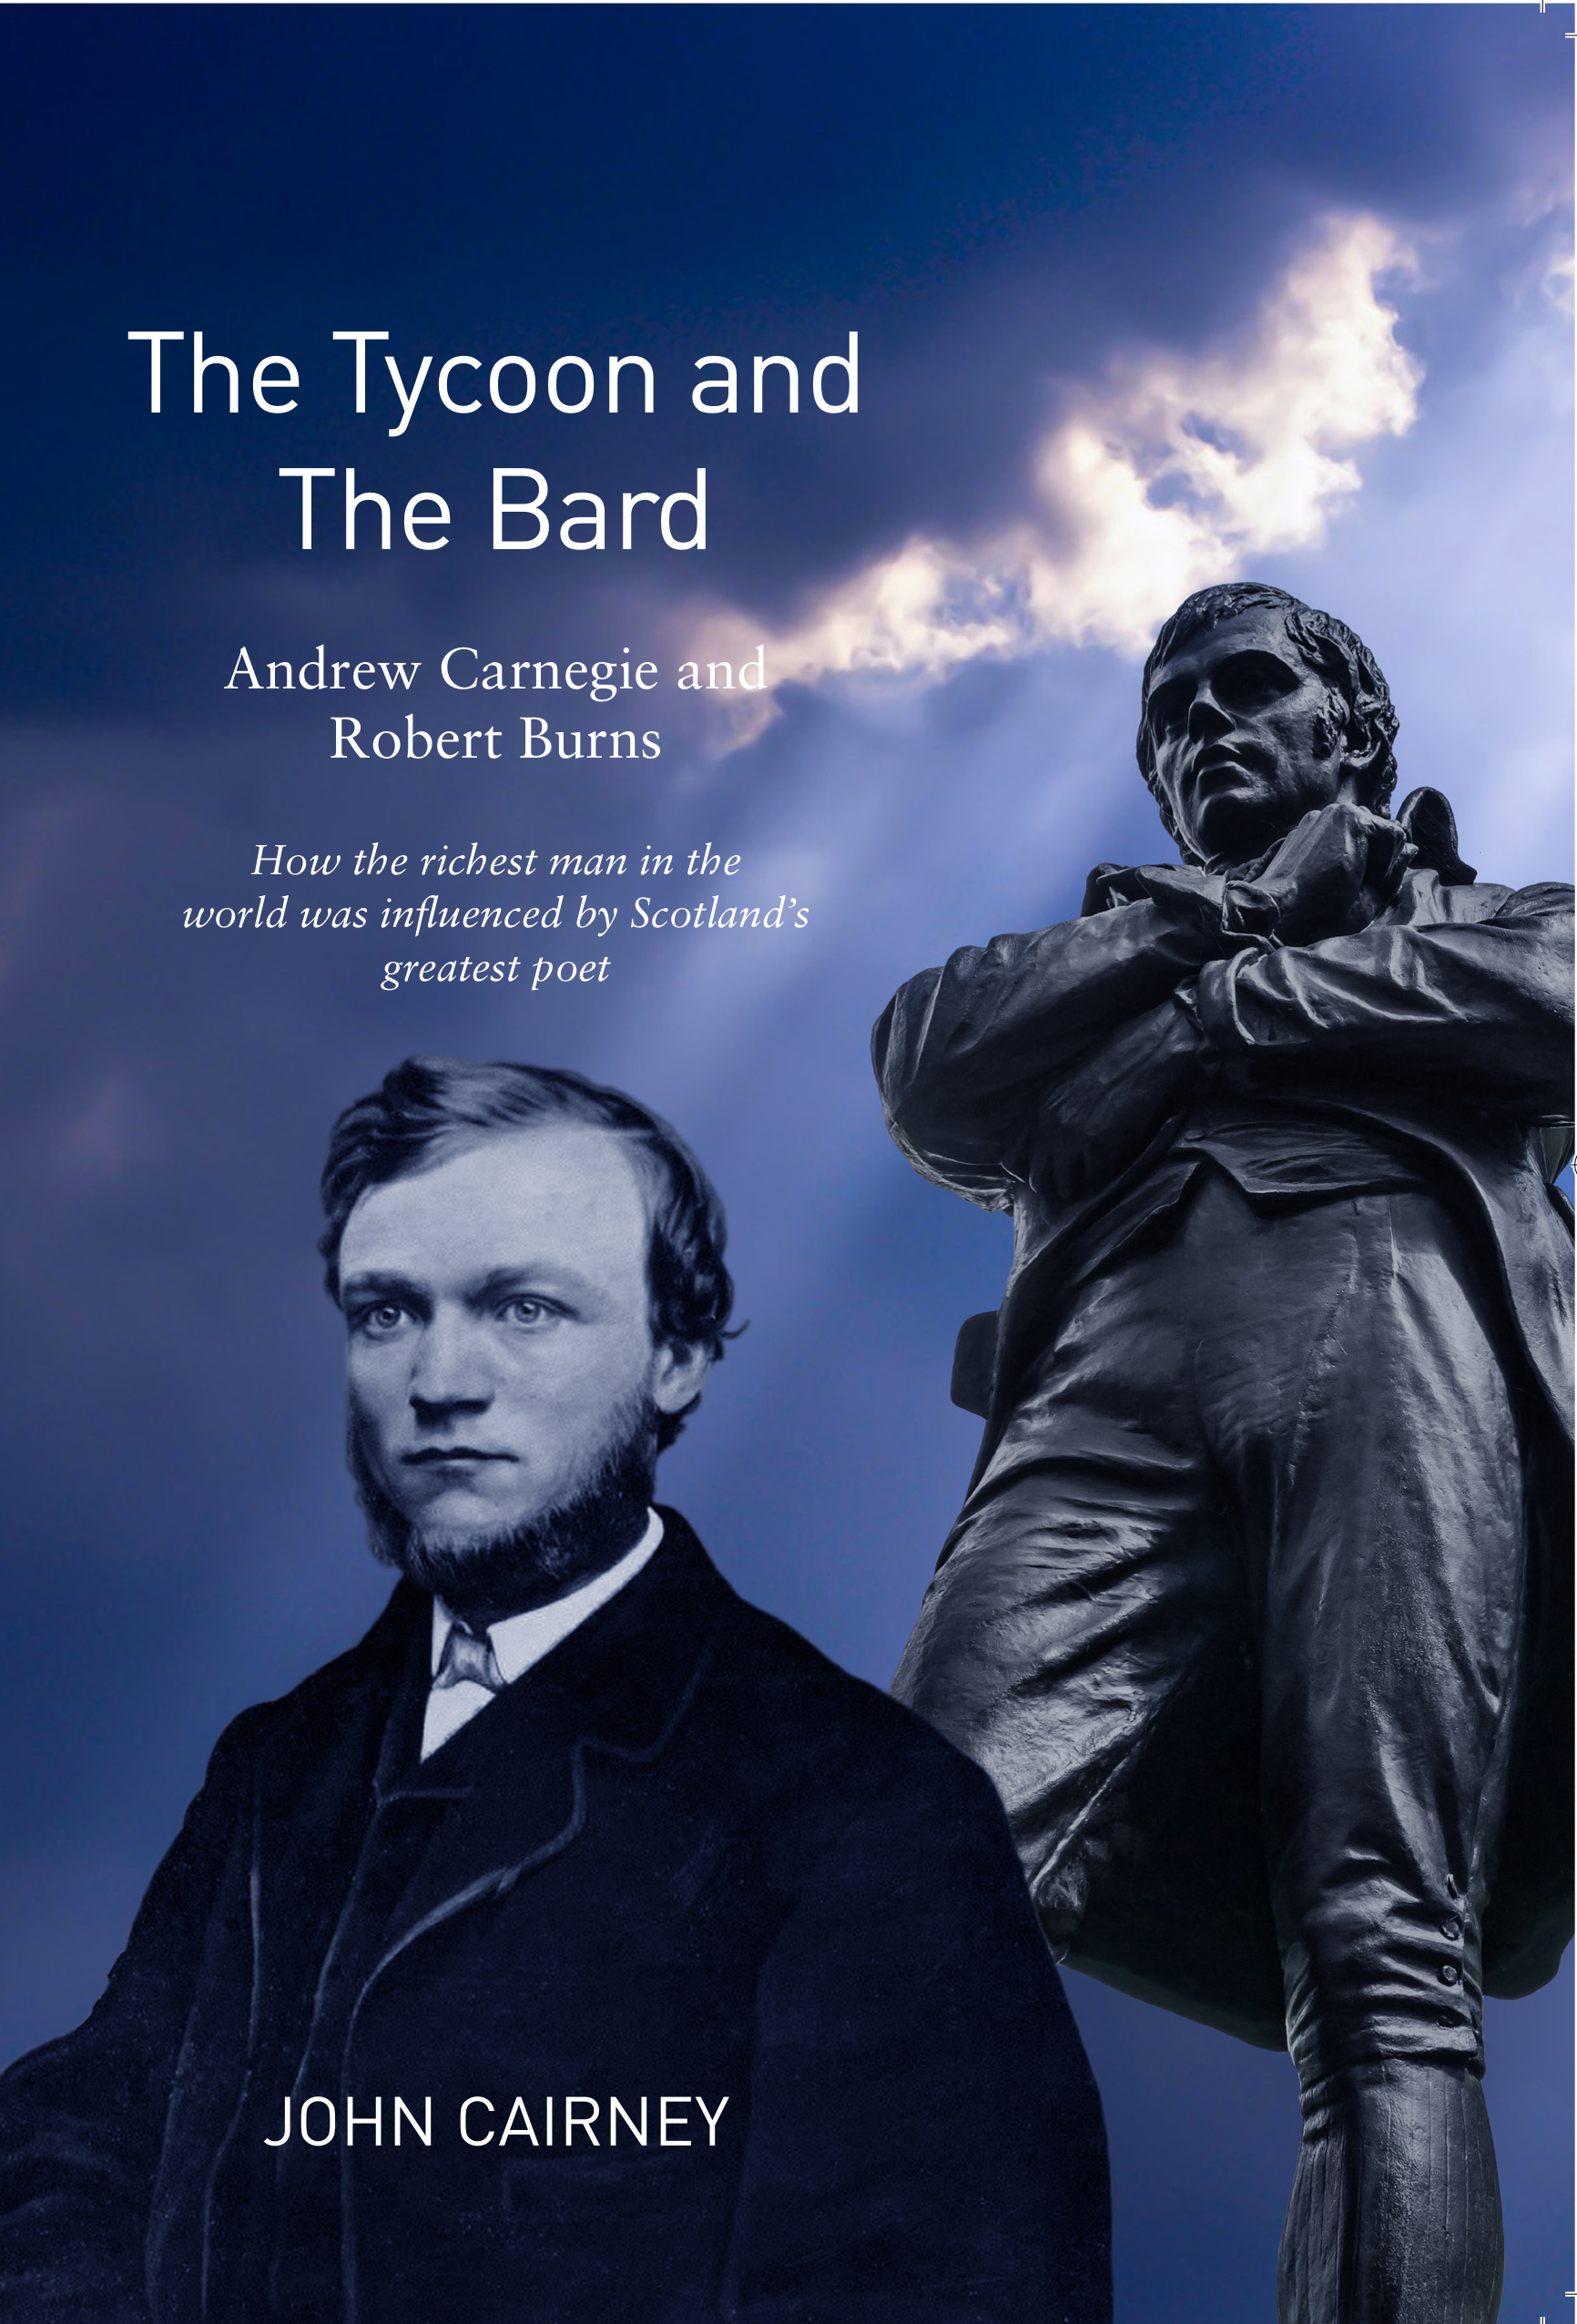 a biography of andrew carnegie the industrial tycoon and philantrophist